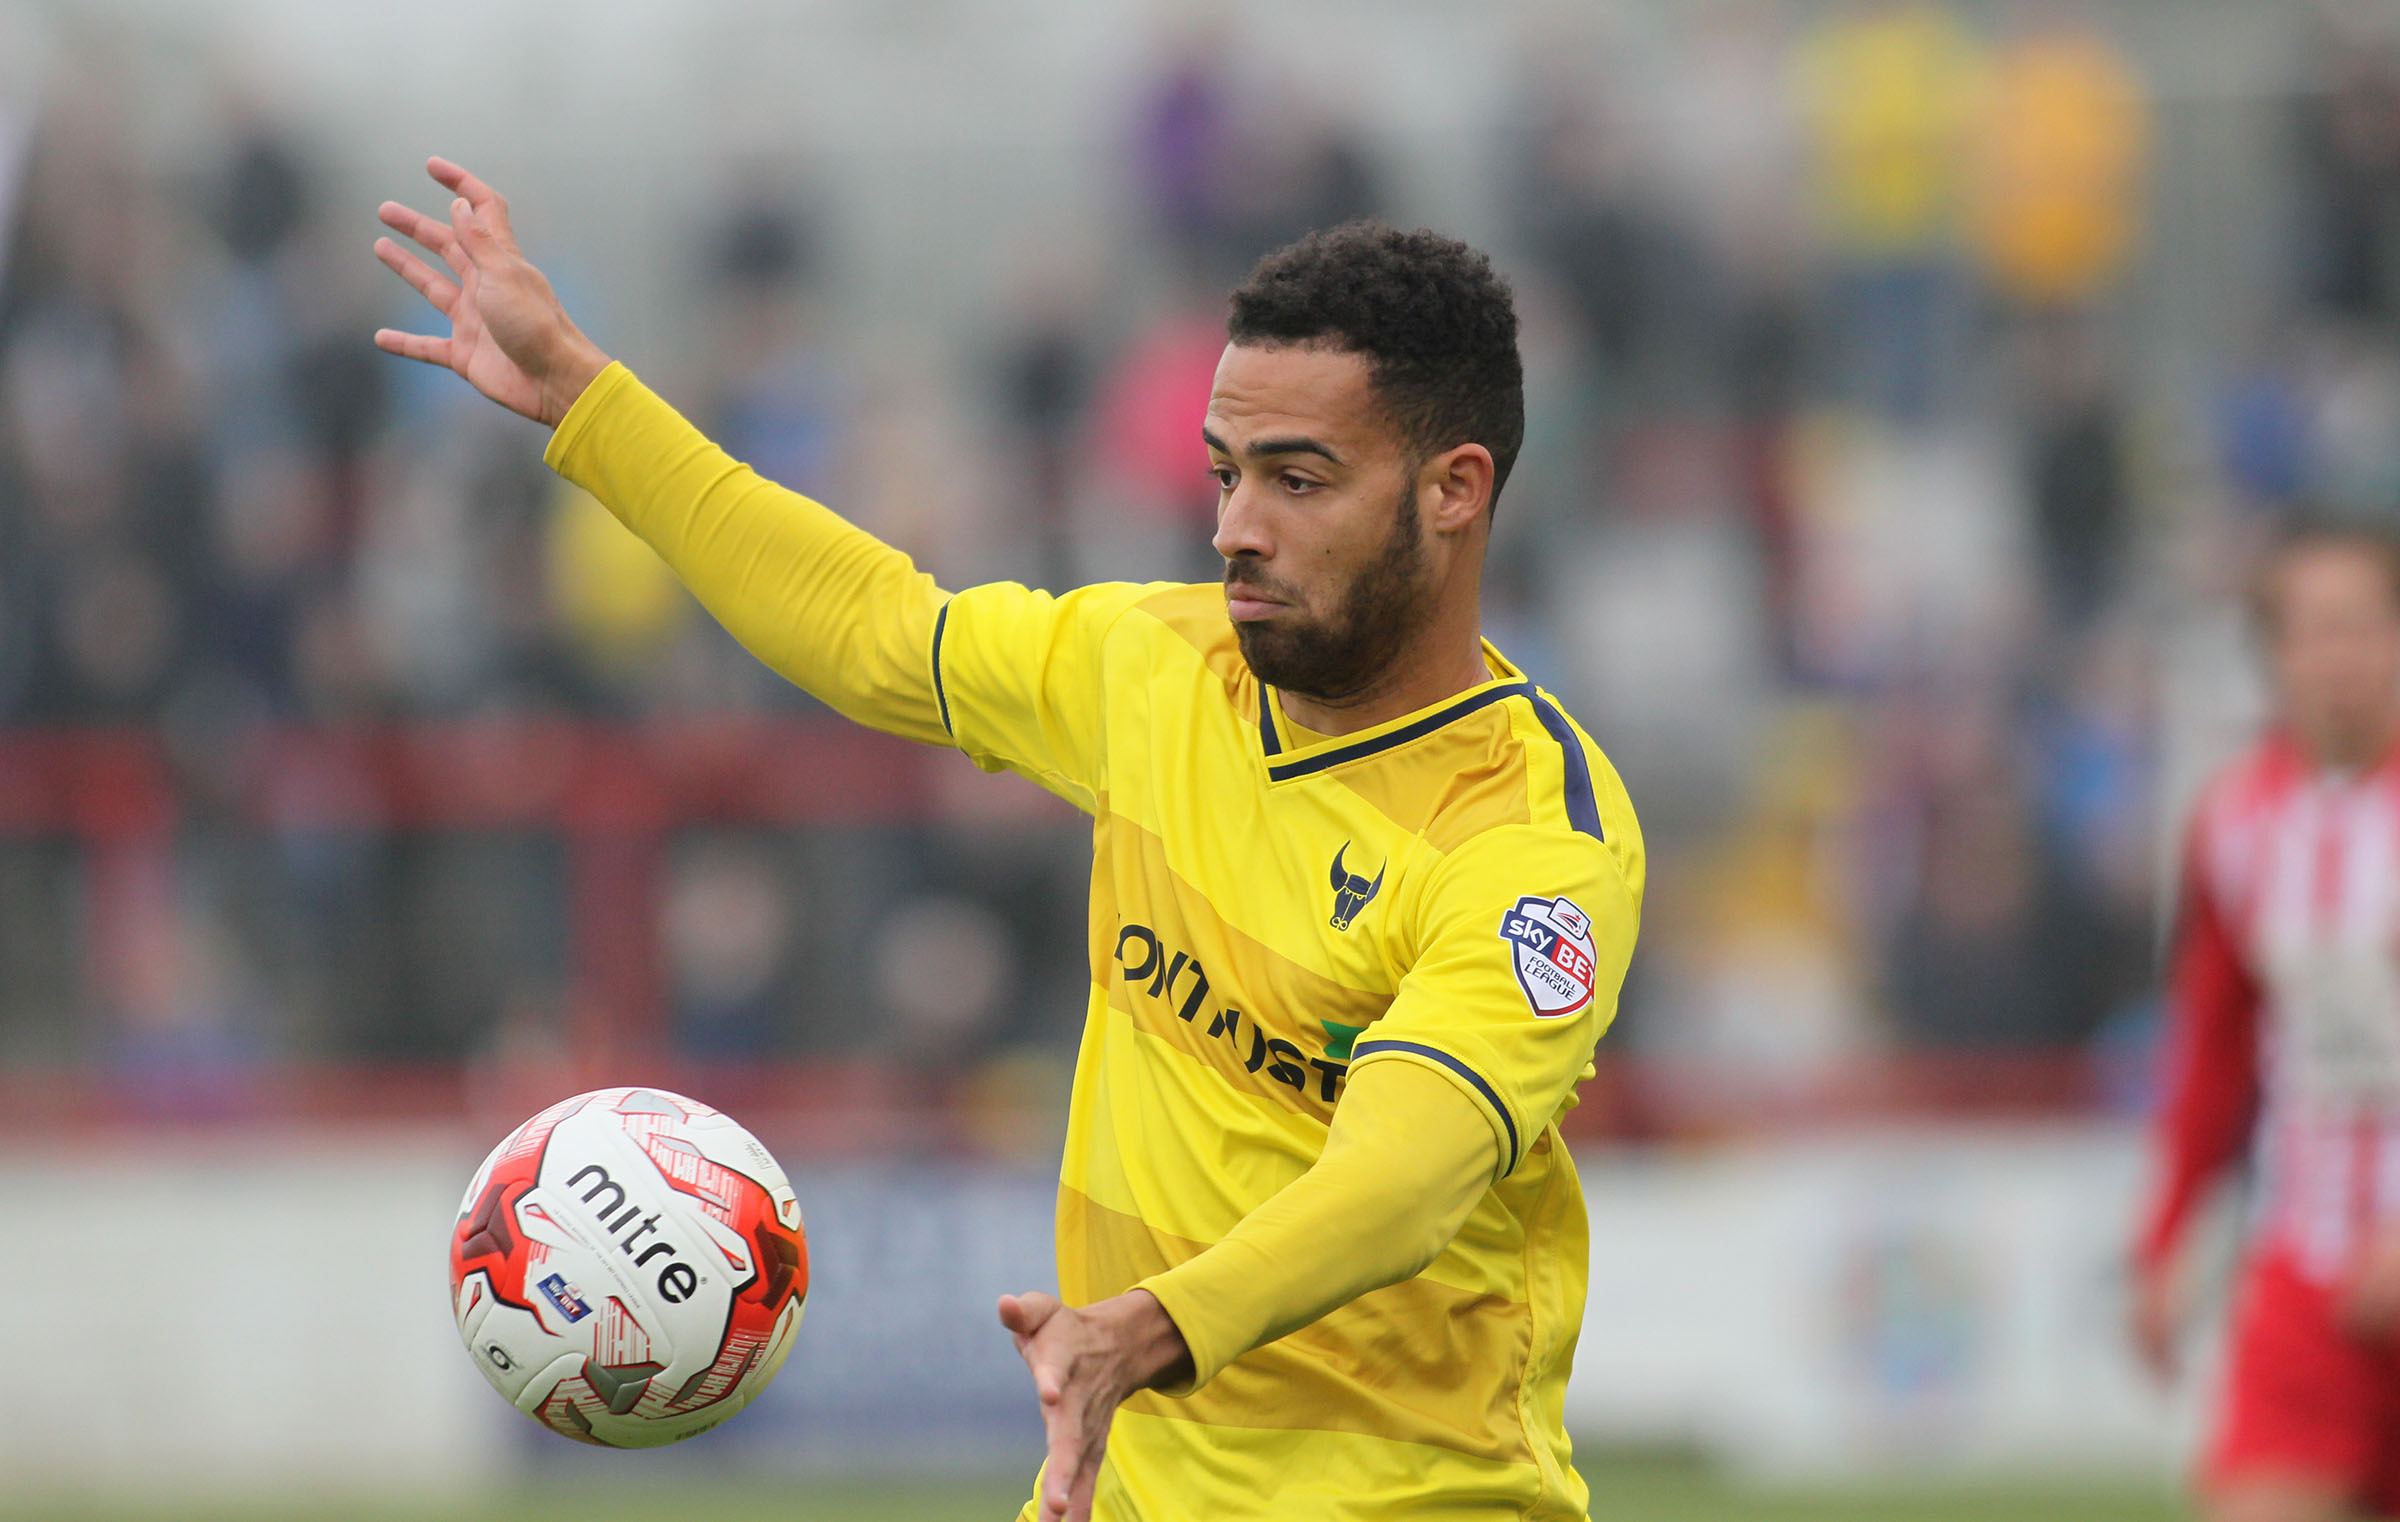 Jordan Graham during his time on loan with Oxford United in 2015. The winger has spent the last month training at the club